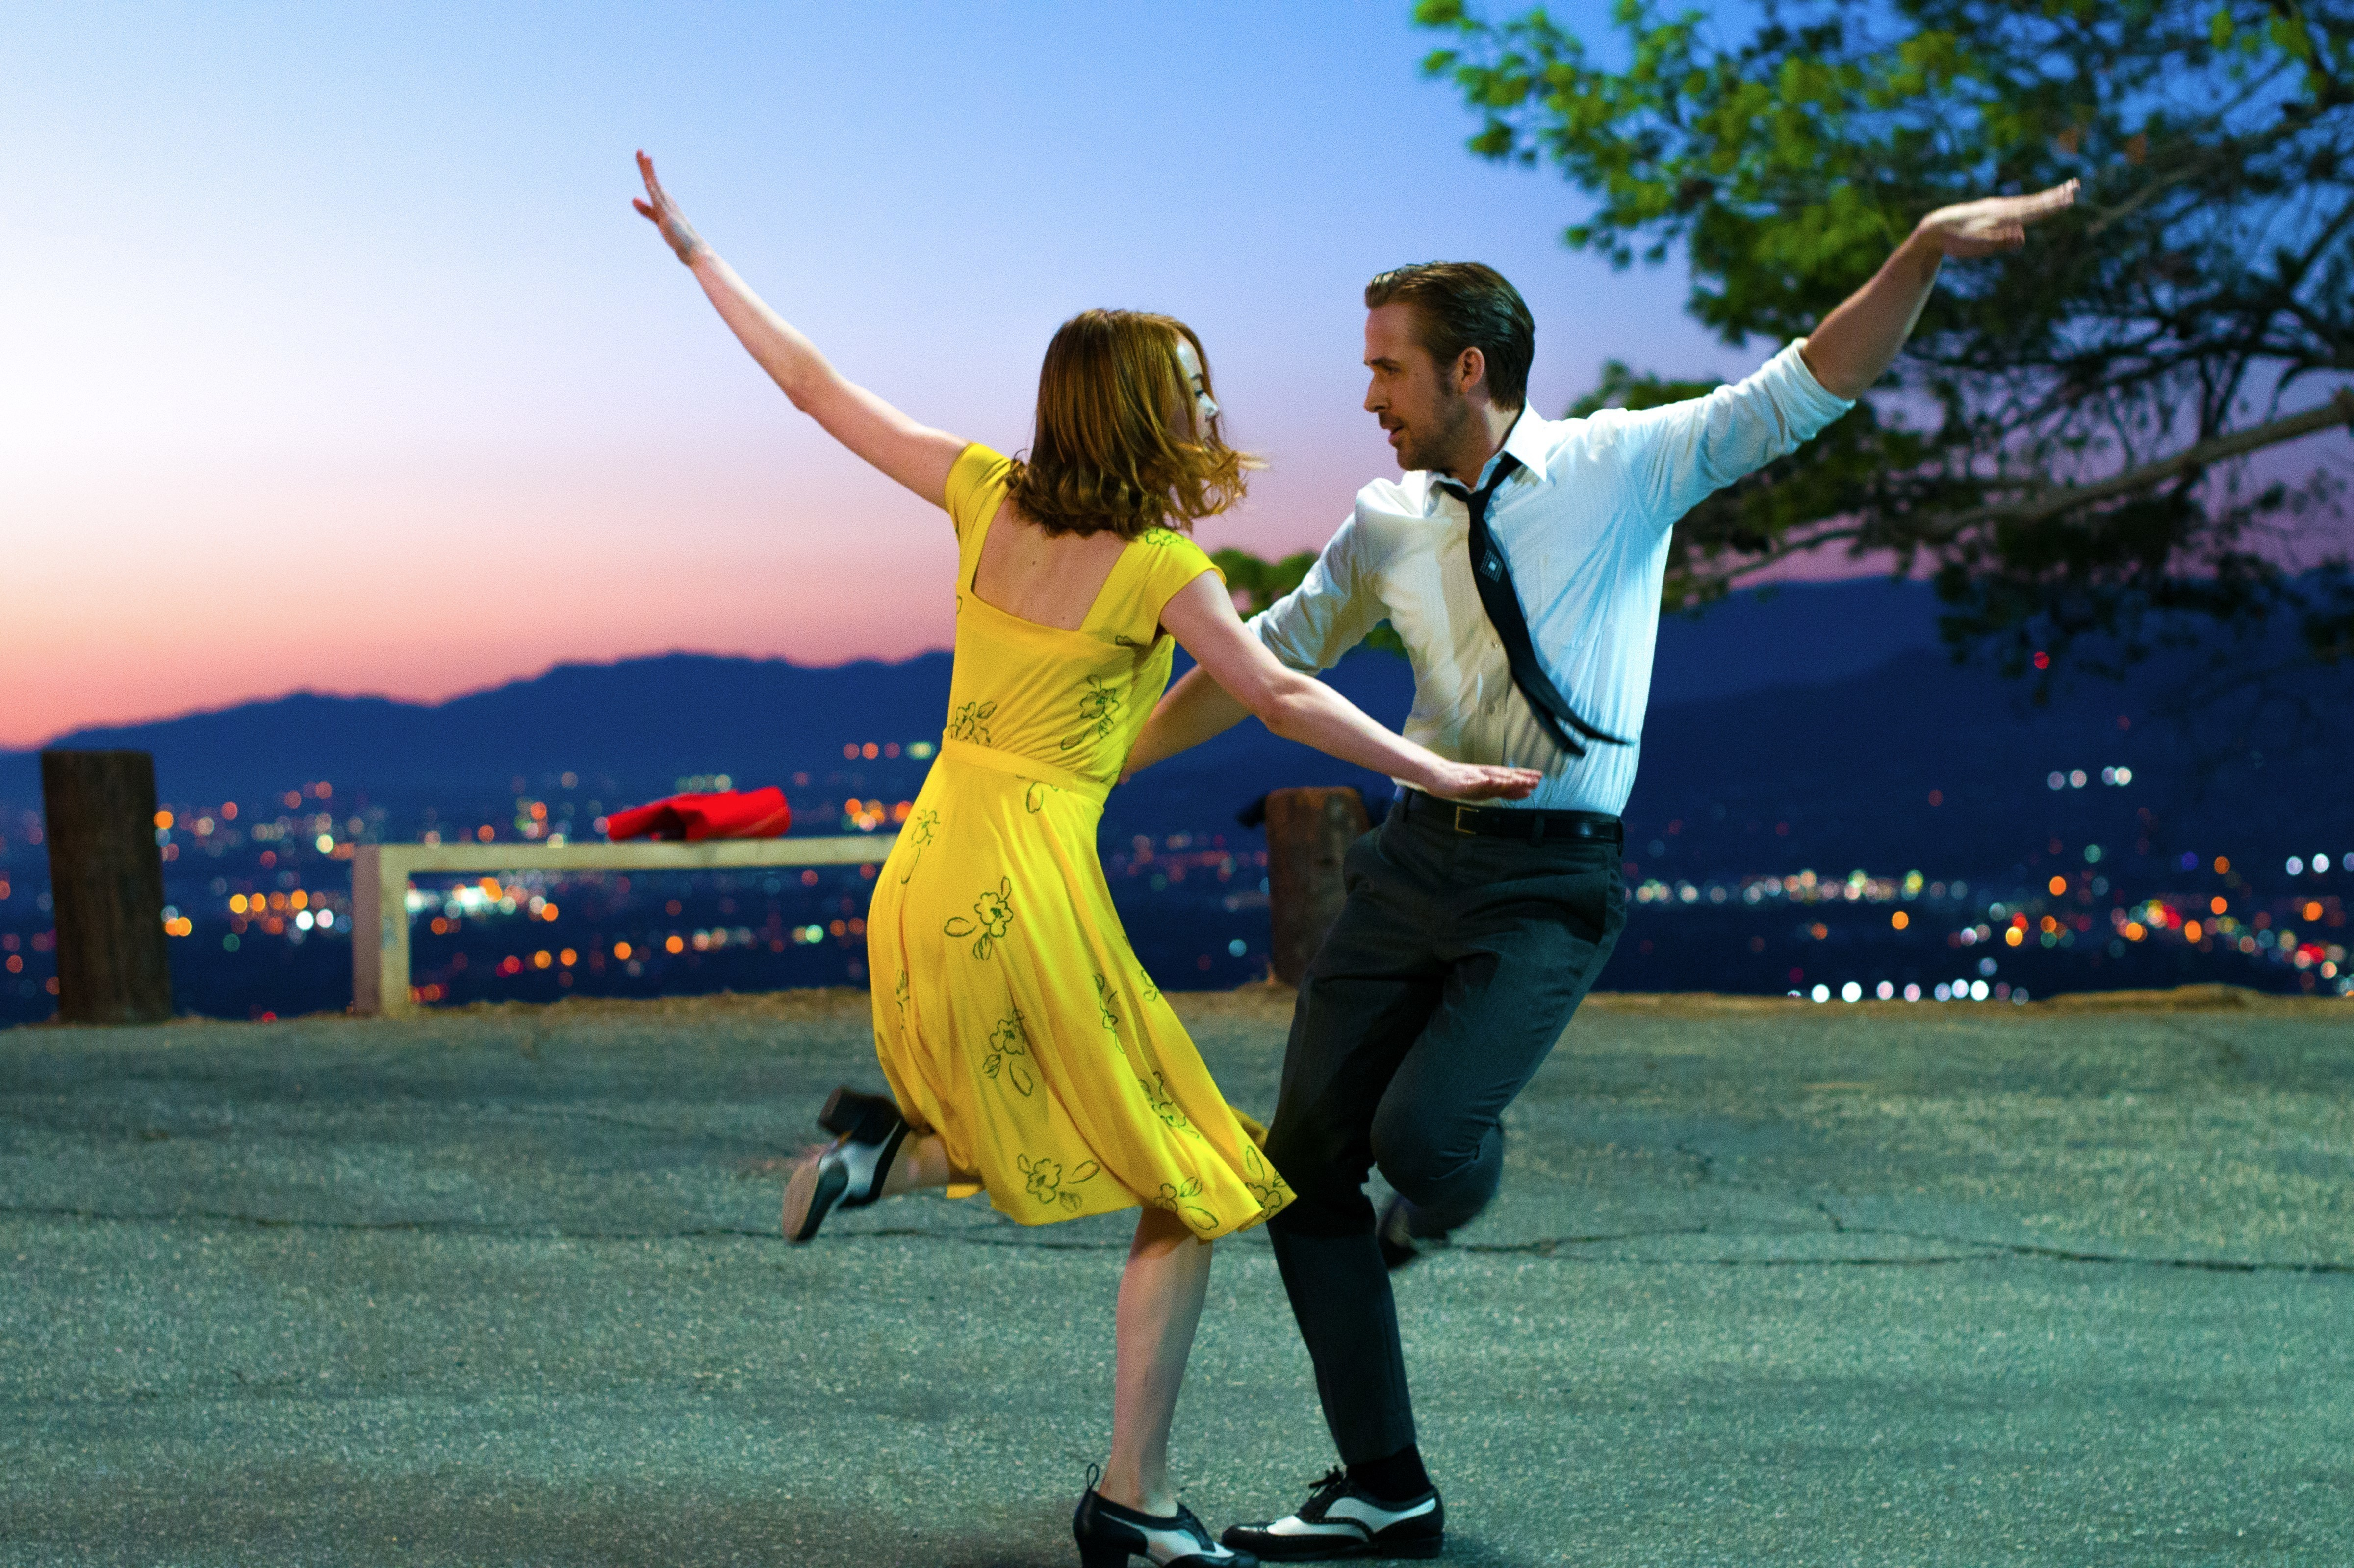 In 'An Excellent Year' For Film, Critic David Edelstein Shares His 12 Favorites